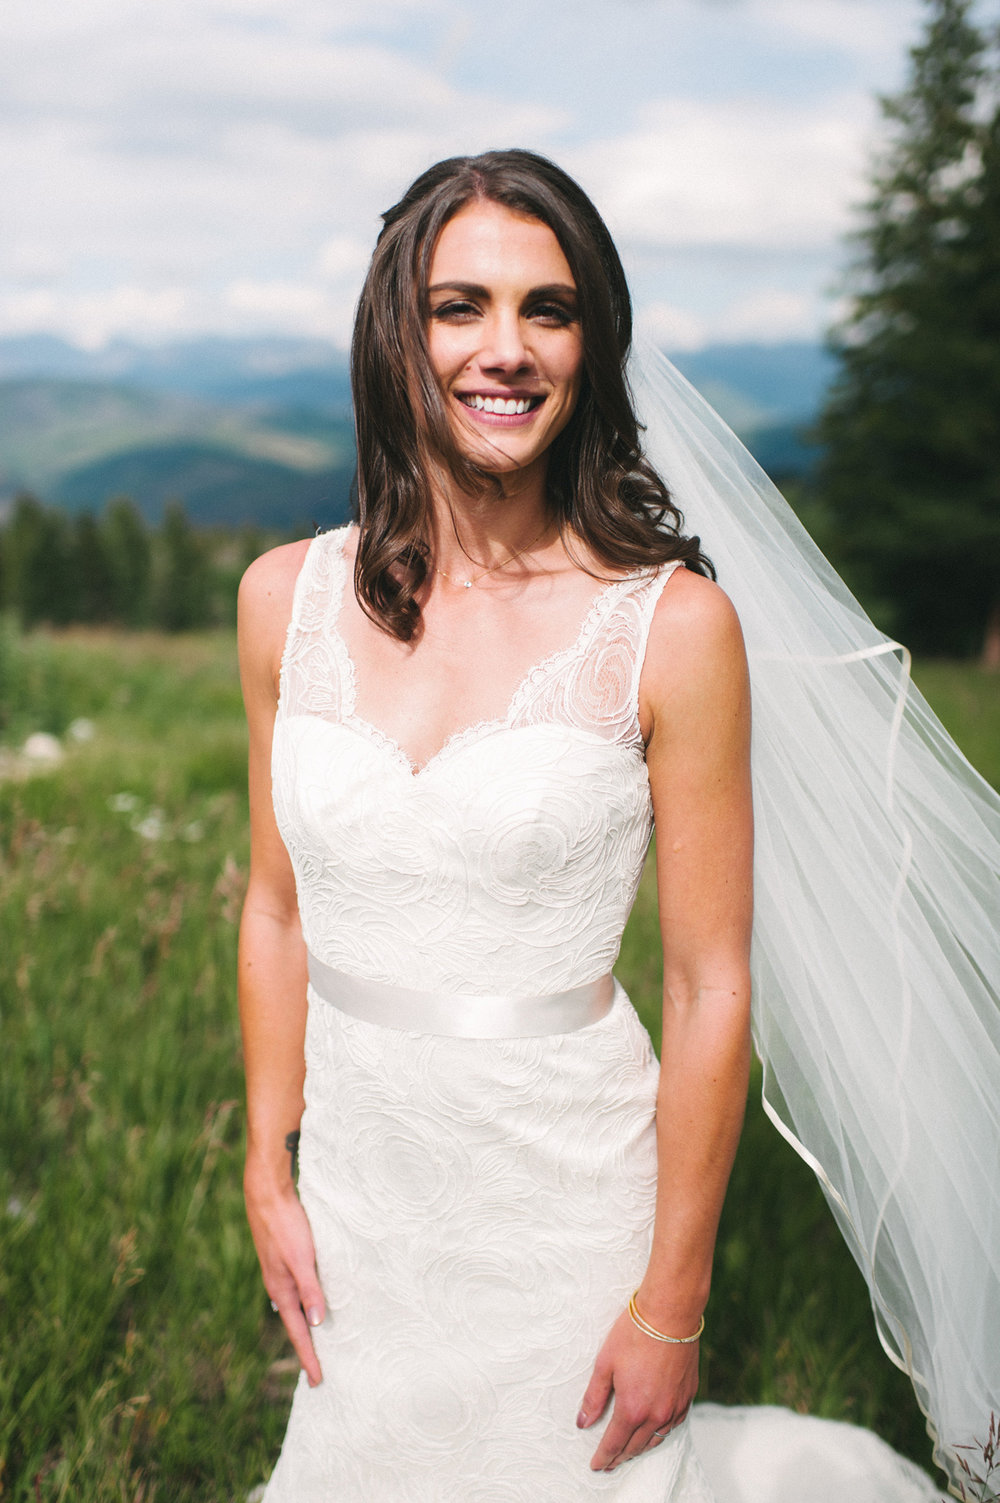 361-beaver-creek--bride--portrait--mountain-top.jpg